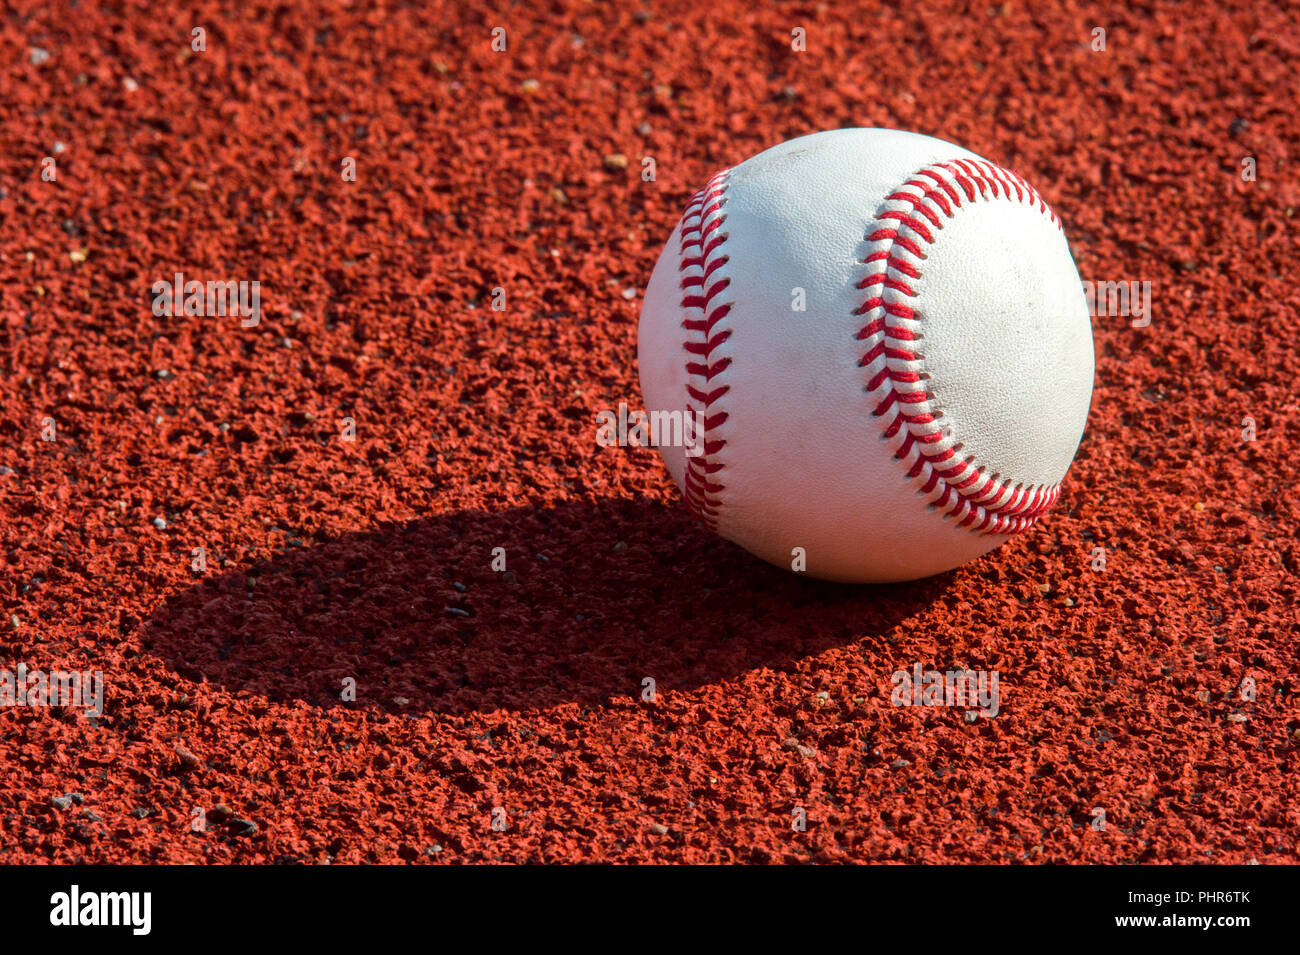 new baseball ball on red track rubber - Stock Image